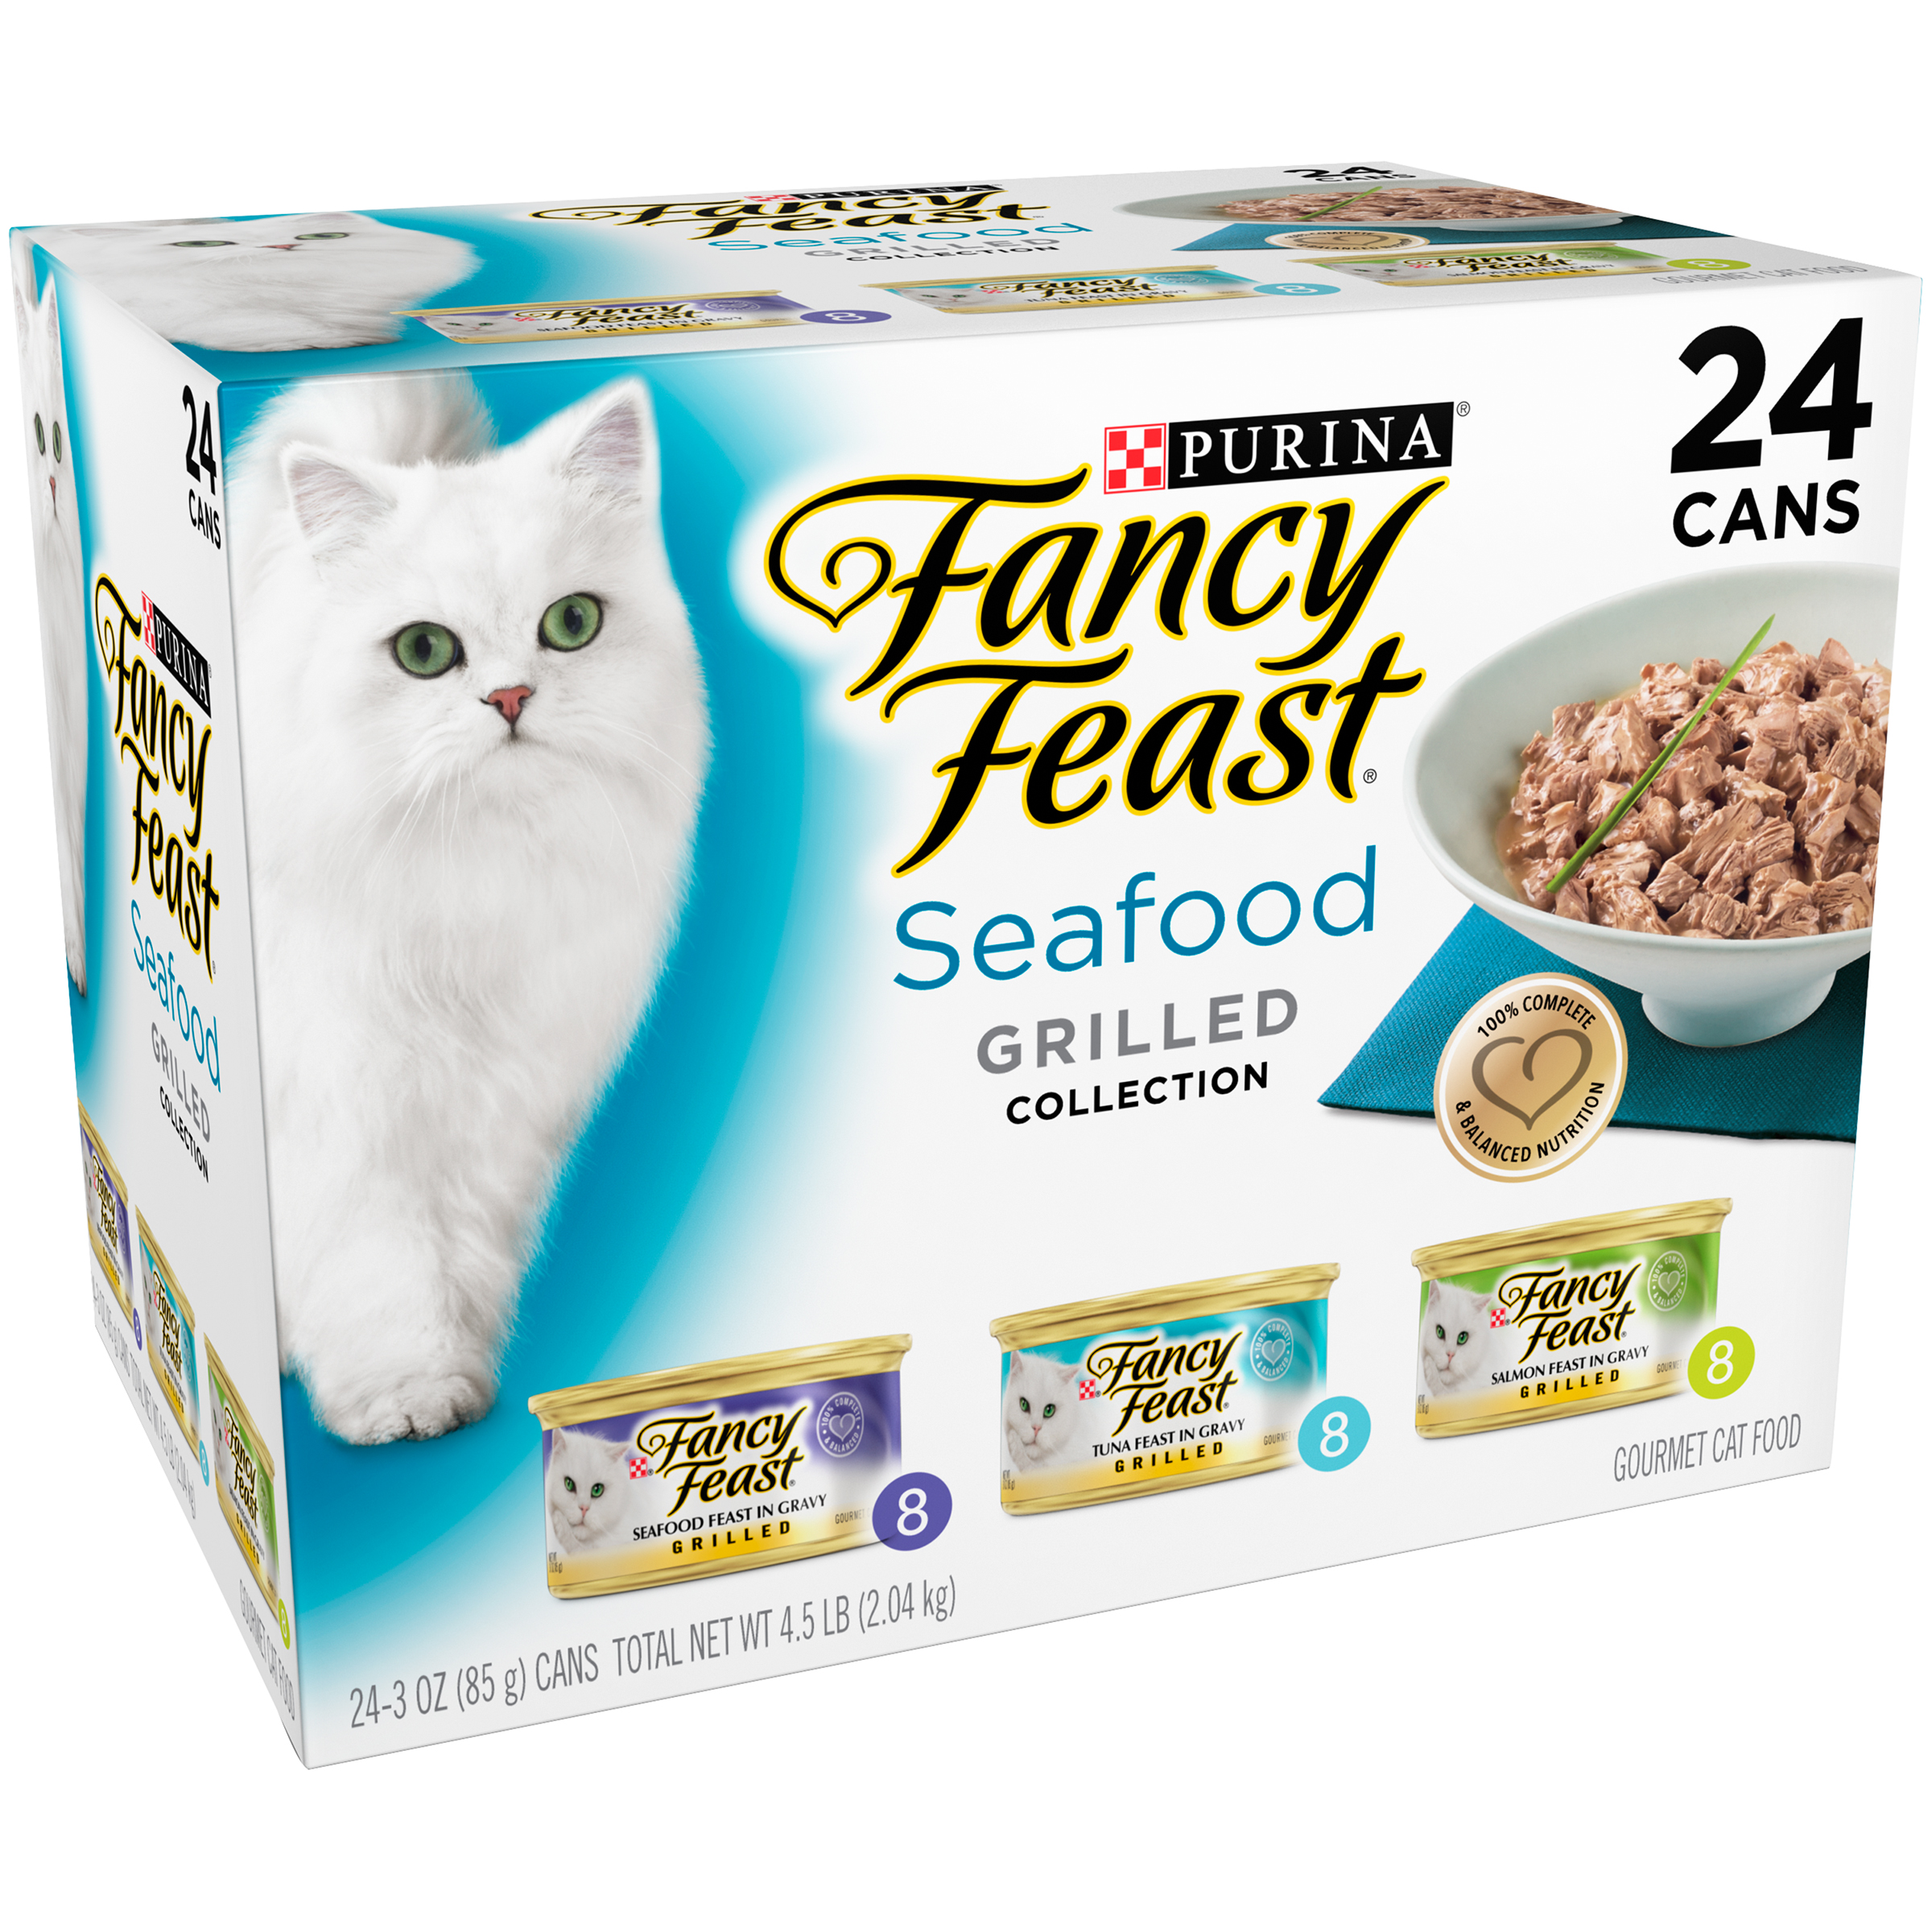 Purina Fancy Feast Grilled Seafood Feast Collection Cat Food 24-3 oz. Cans